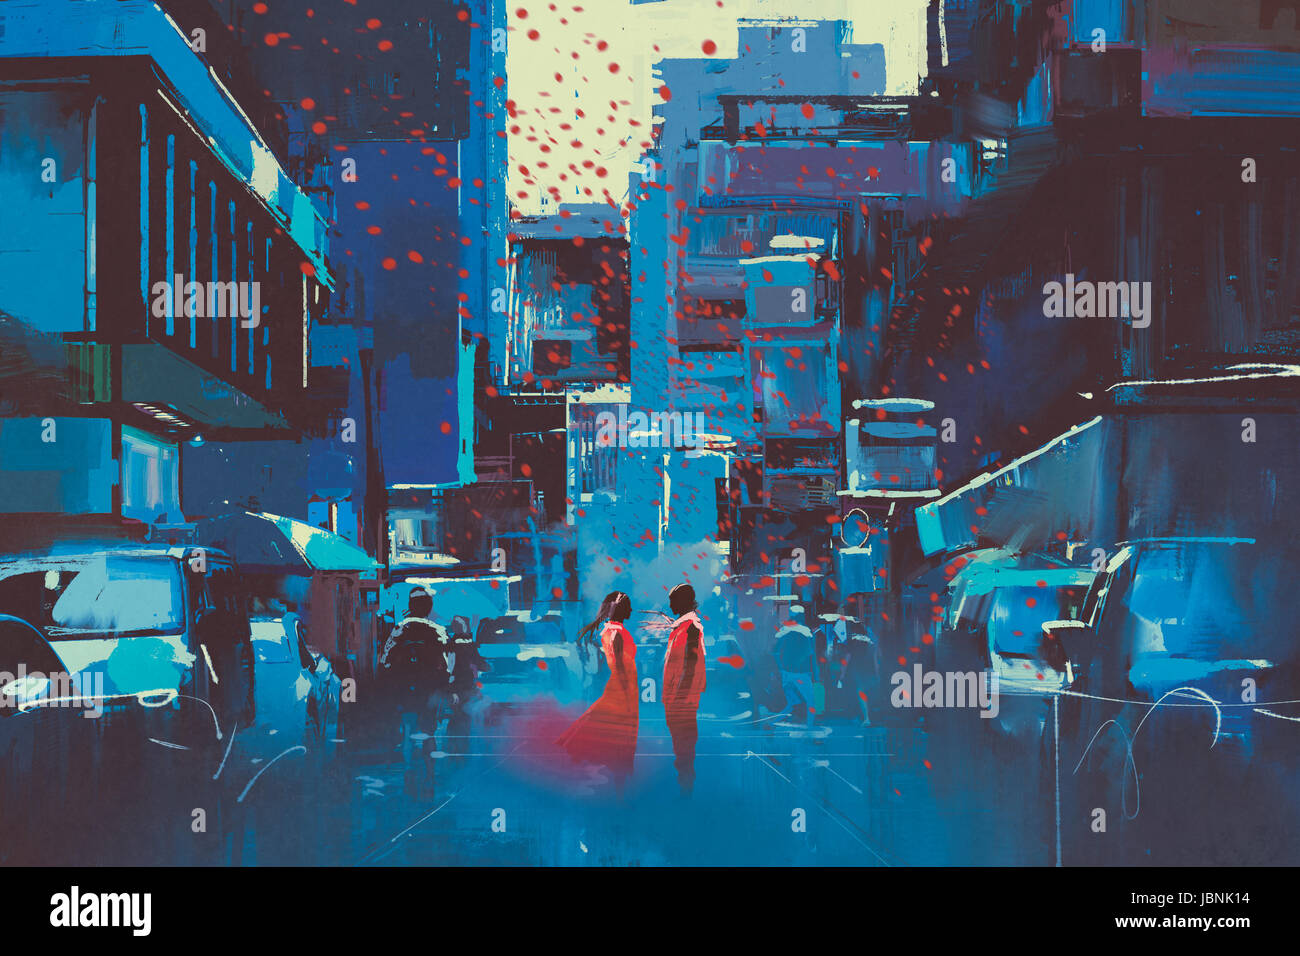 man and woman in red standing in blue city with digital art style, illustration painting - Stock Image